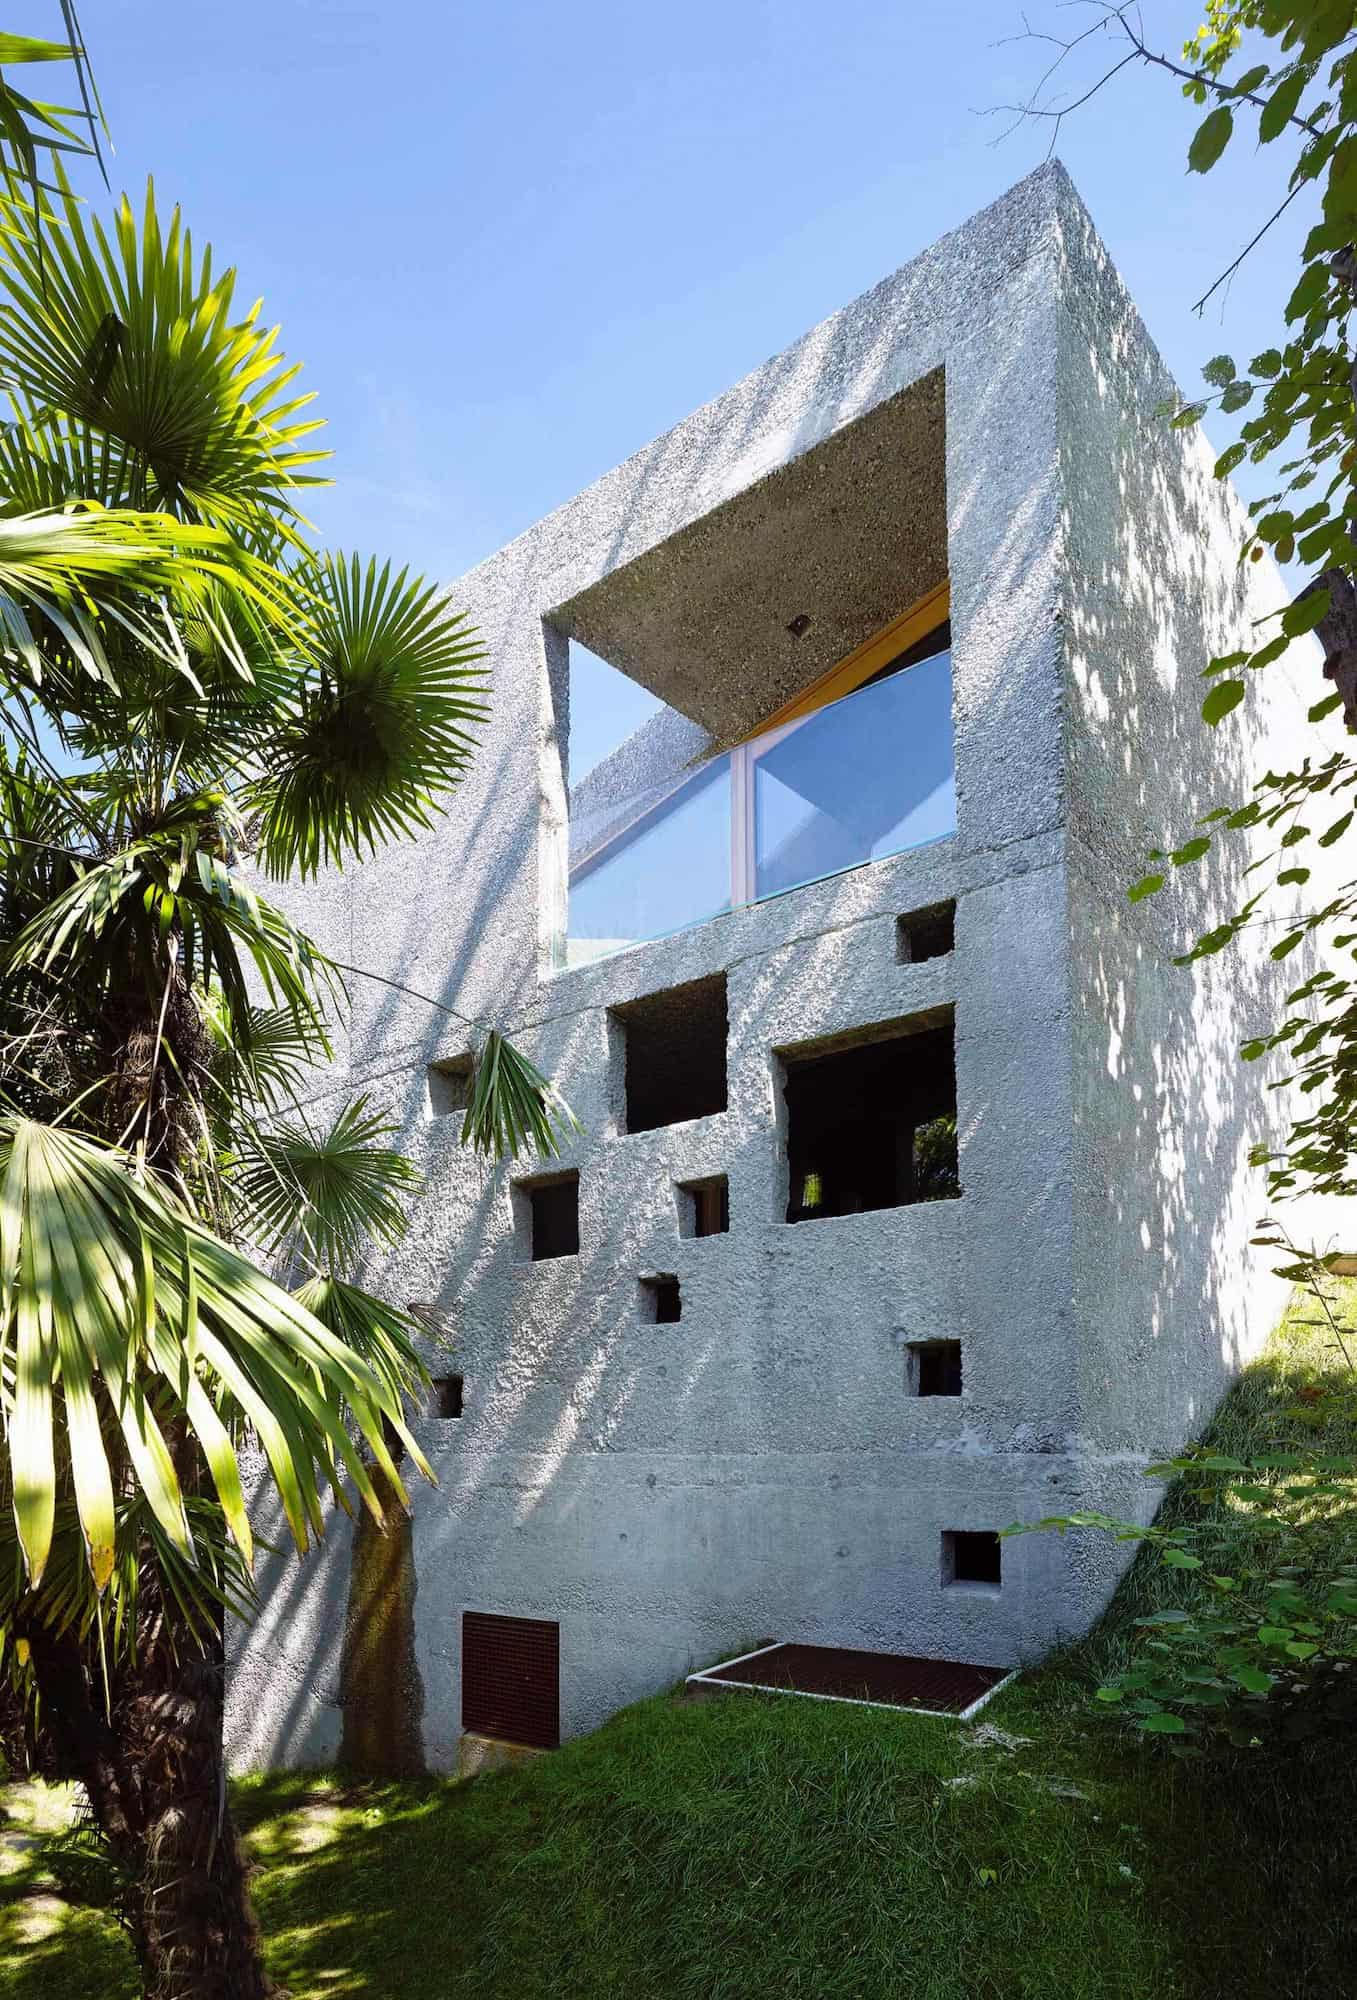 Tiny Bunker Home Transformed Into a Mesmerizing Refuge (6)